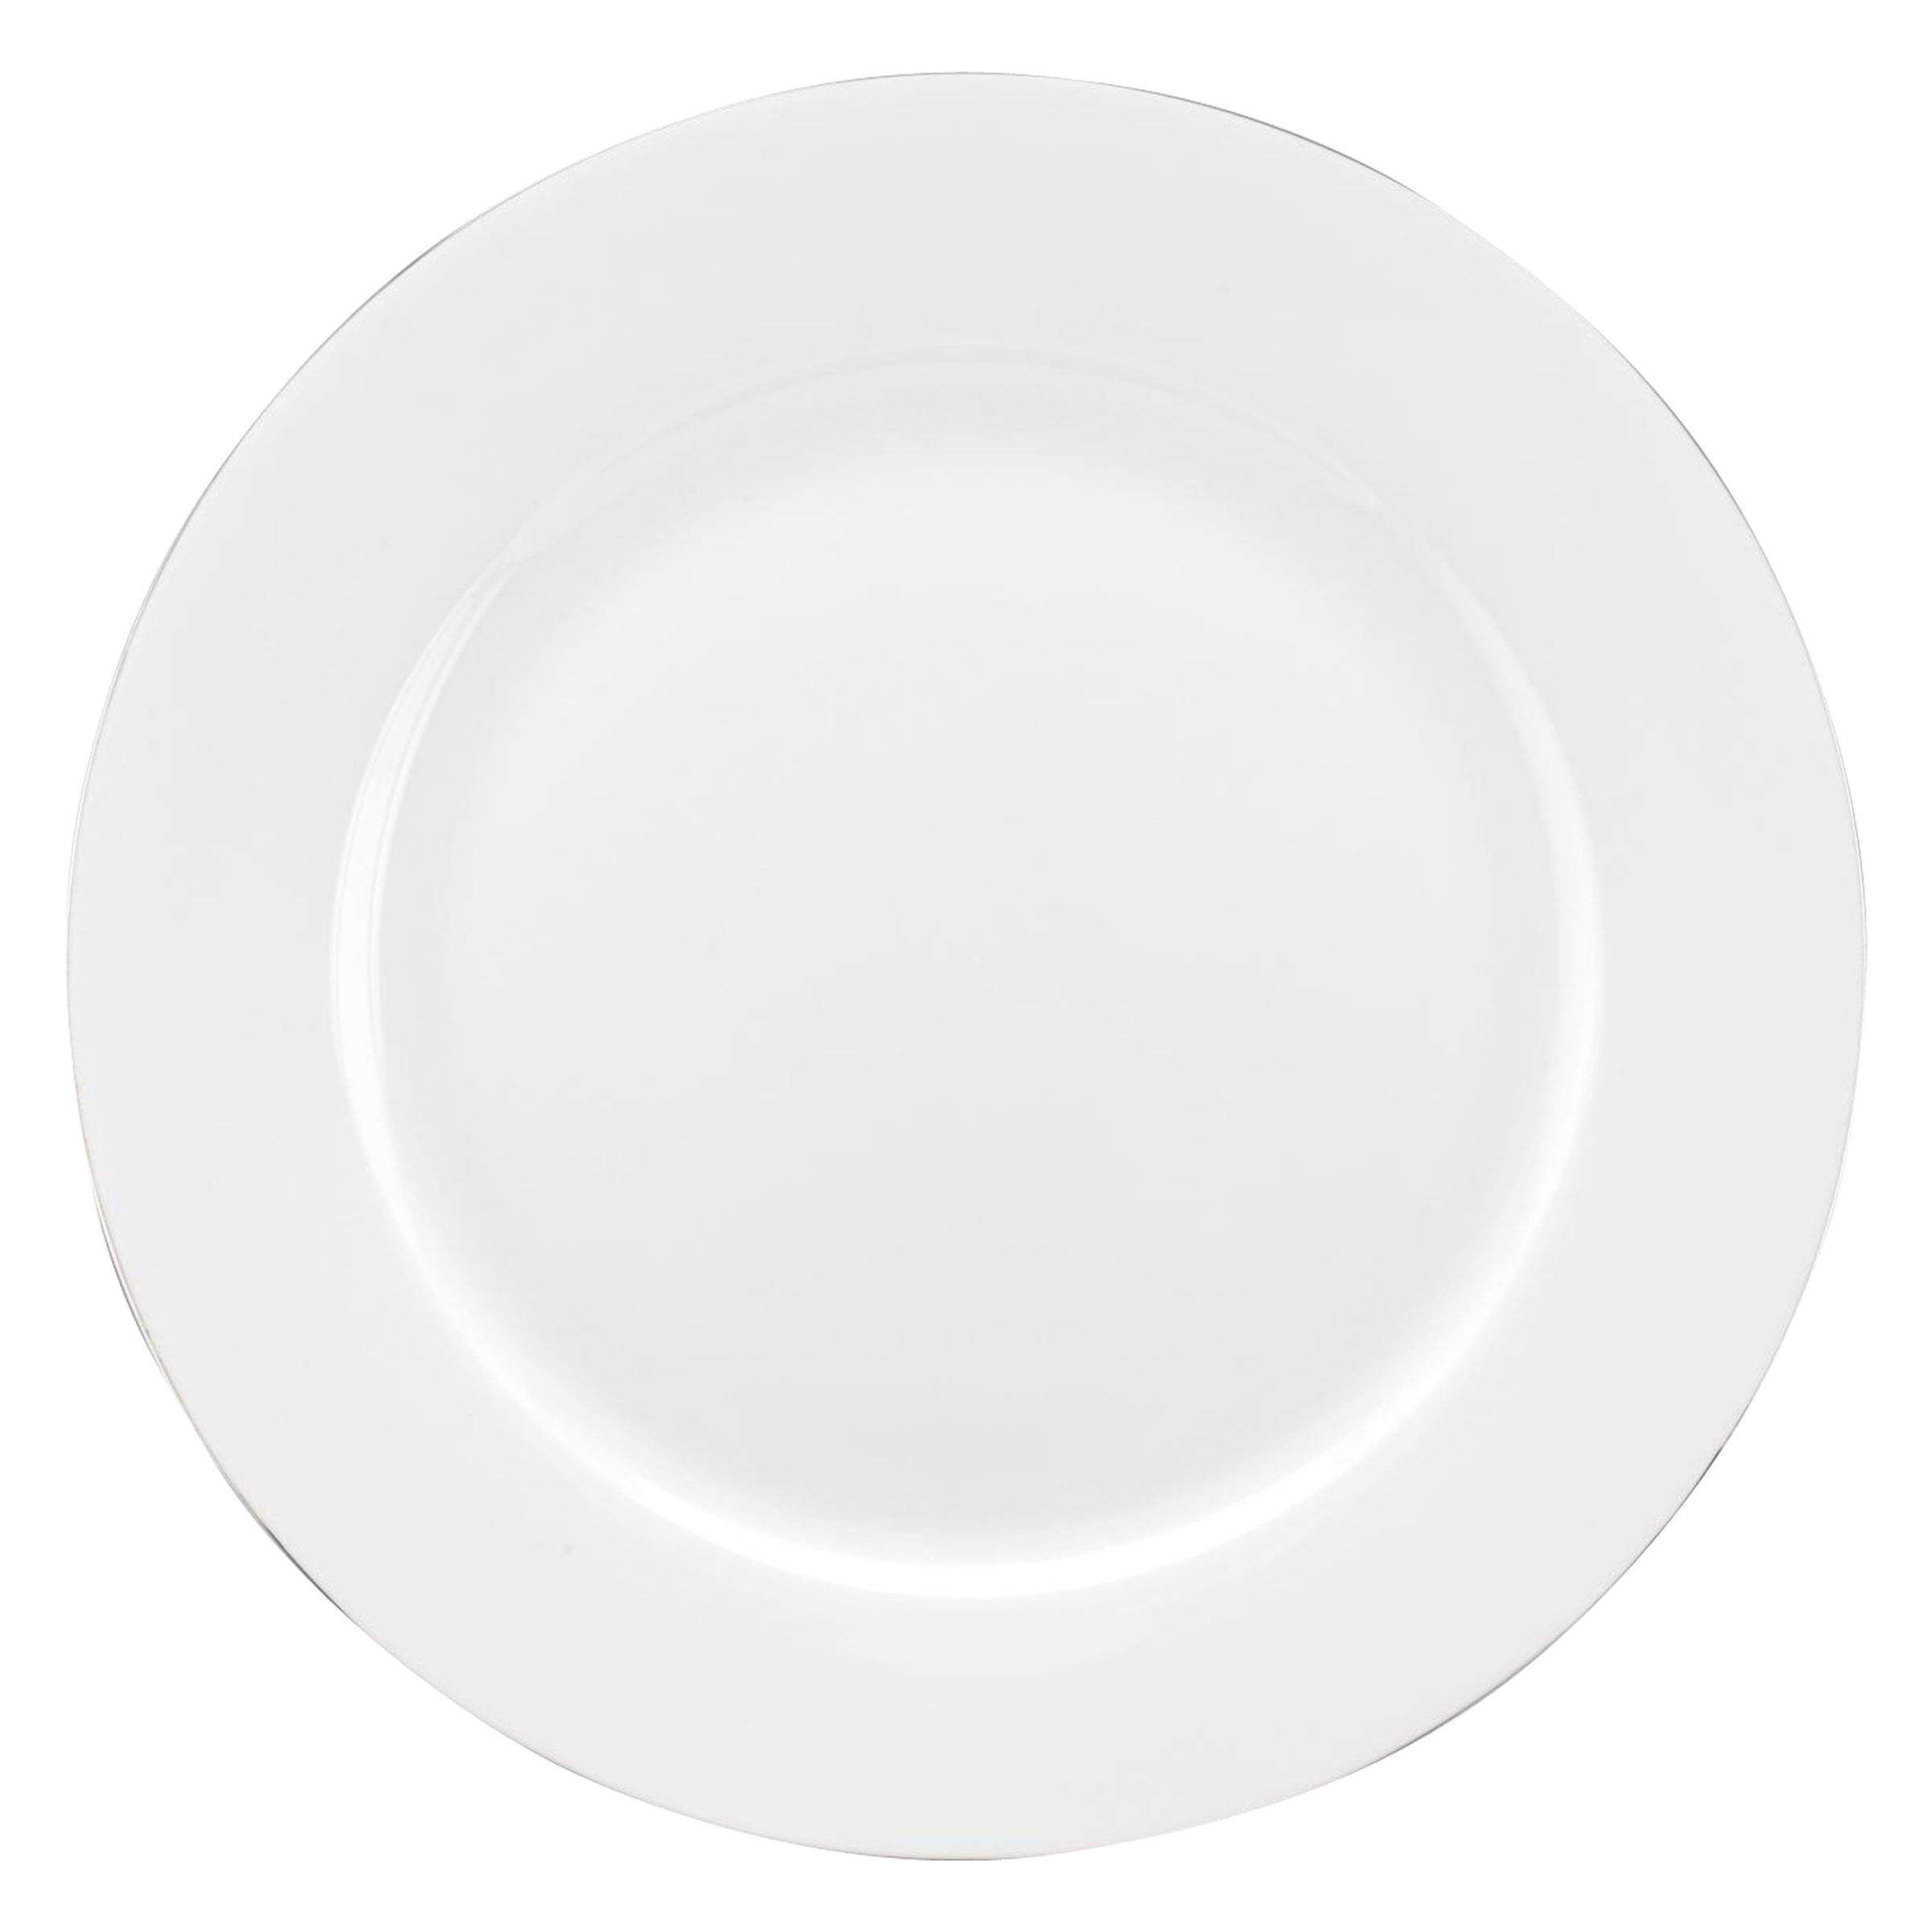 Royal Worcester Royal Worcester Serendipity Platinum Bone China Side Plate, White/ Silver, Dia.20.3cm